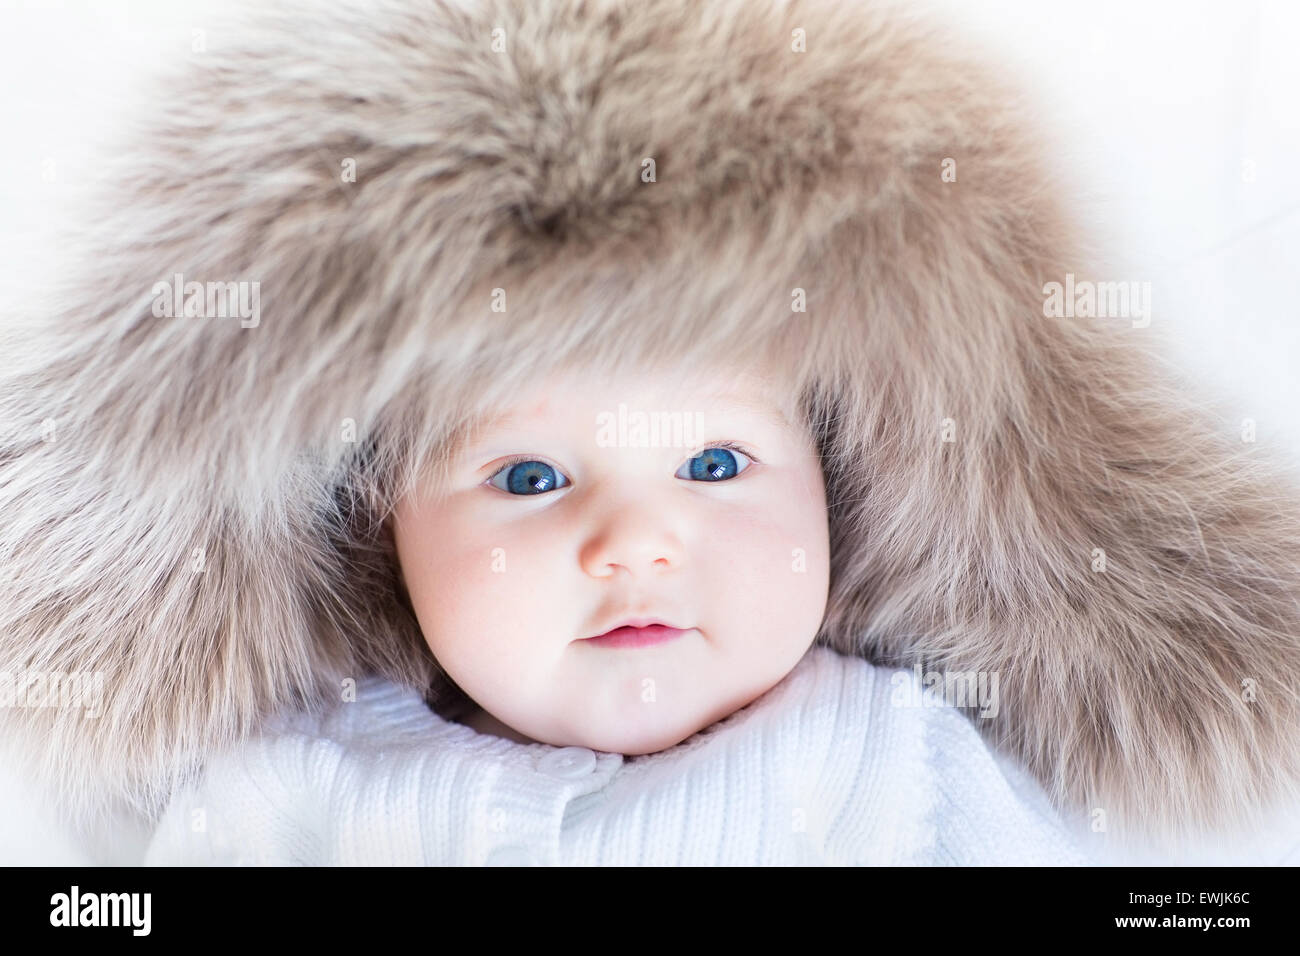 05b1fa0cf Funny cute baby girl with big blue eyes wearing a huge winter hat ...